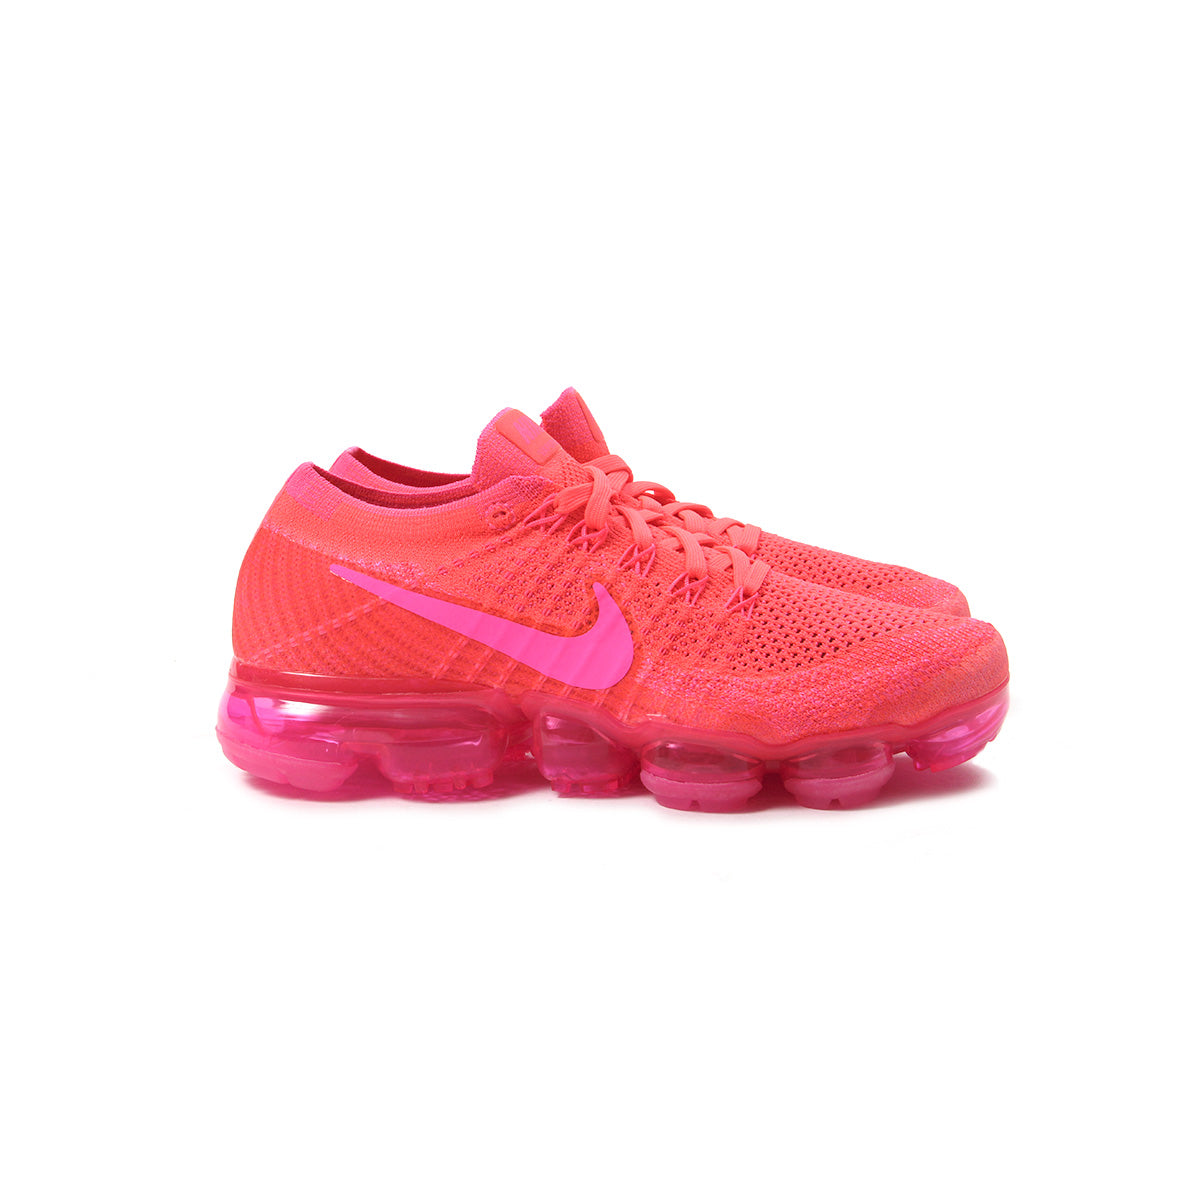 2ad51e8ee87 Nike Air Vapormax Hyper Punch biological-crop-protection.co.uk